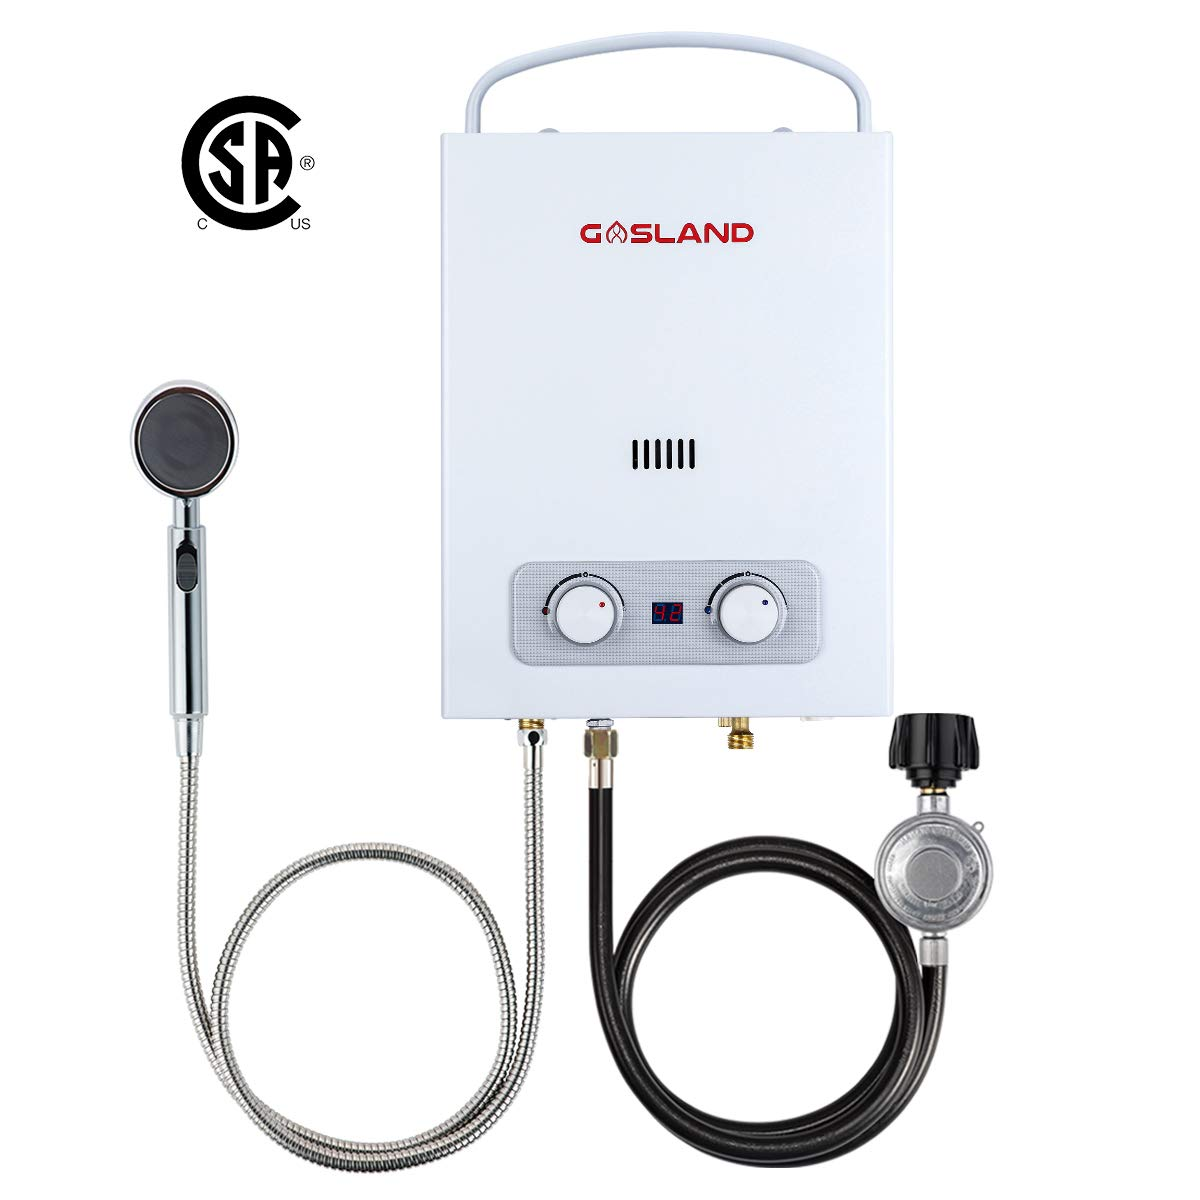 Tankless Water Heater, Gasland 1.5GPM 6L Outdoor Portable Gas Water Heater, Instant Hot Water Heater for RV Camping, Propane Water Heater, with Low Oxygen Flame Failure & Overheating Safety Protection